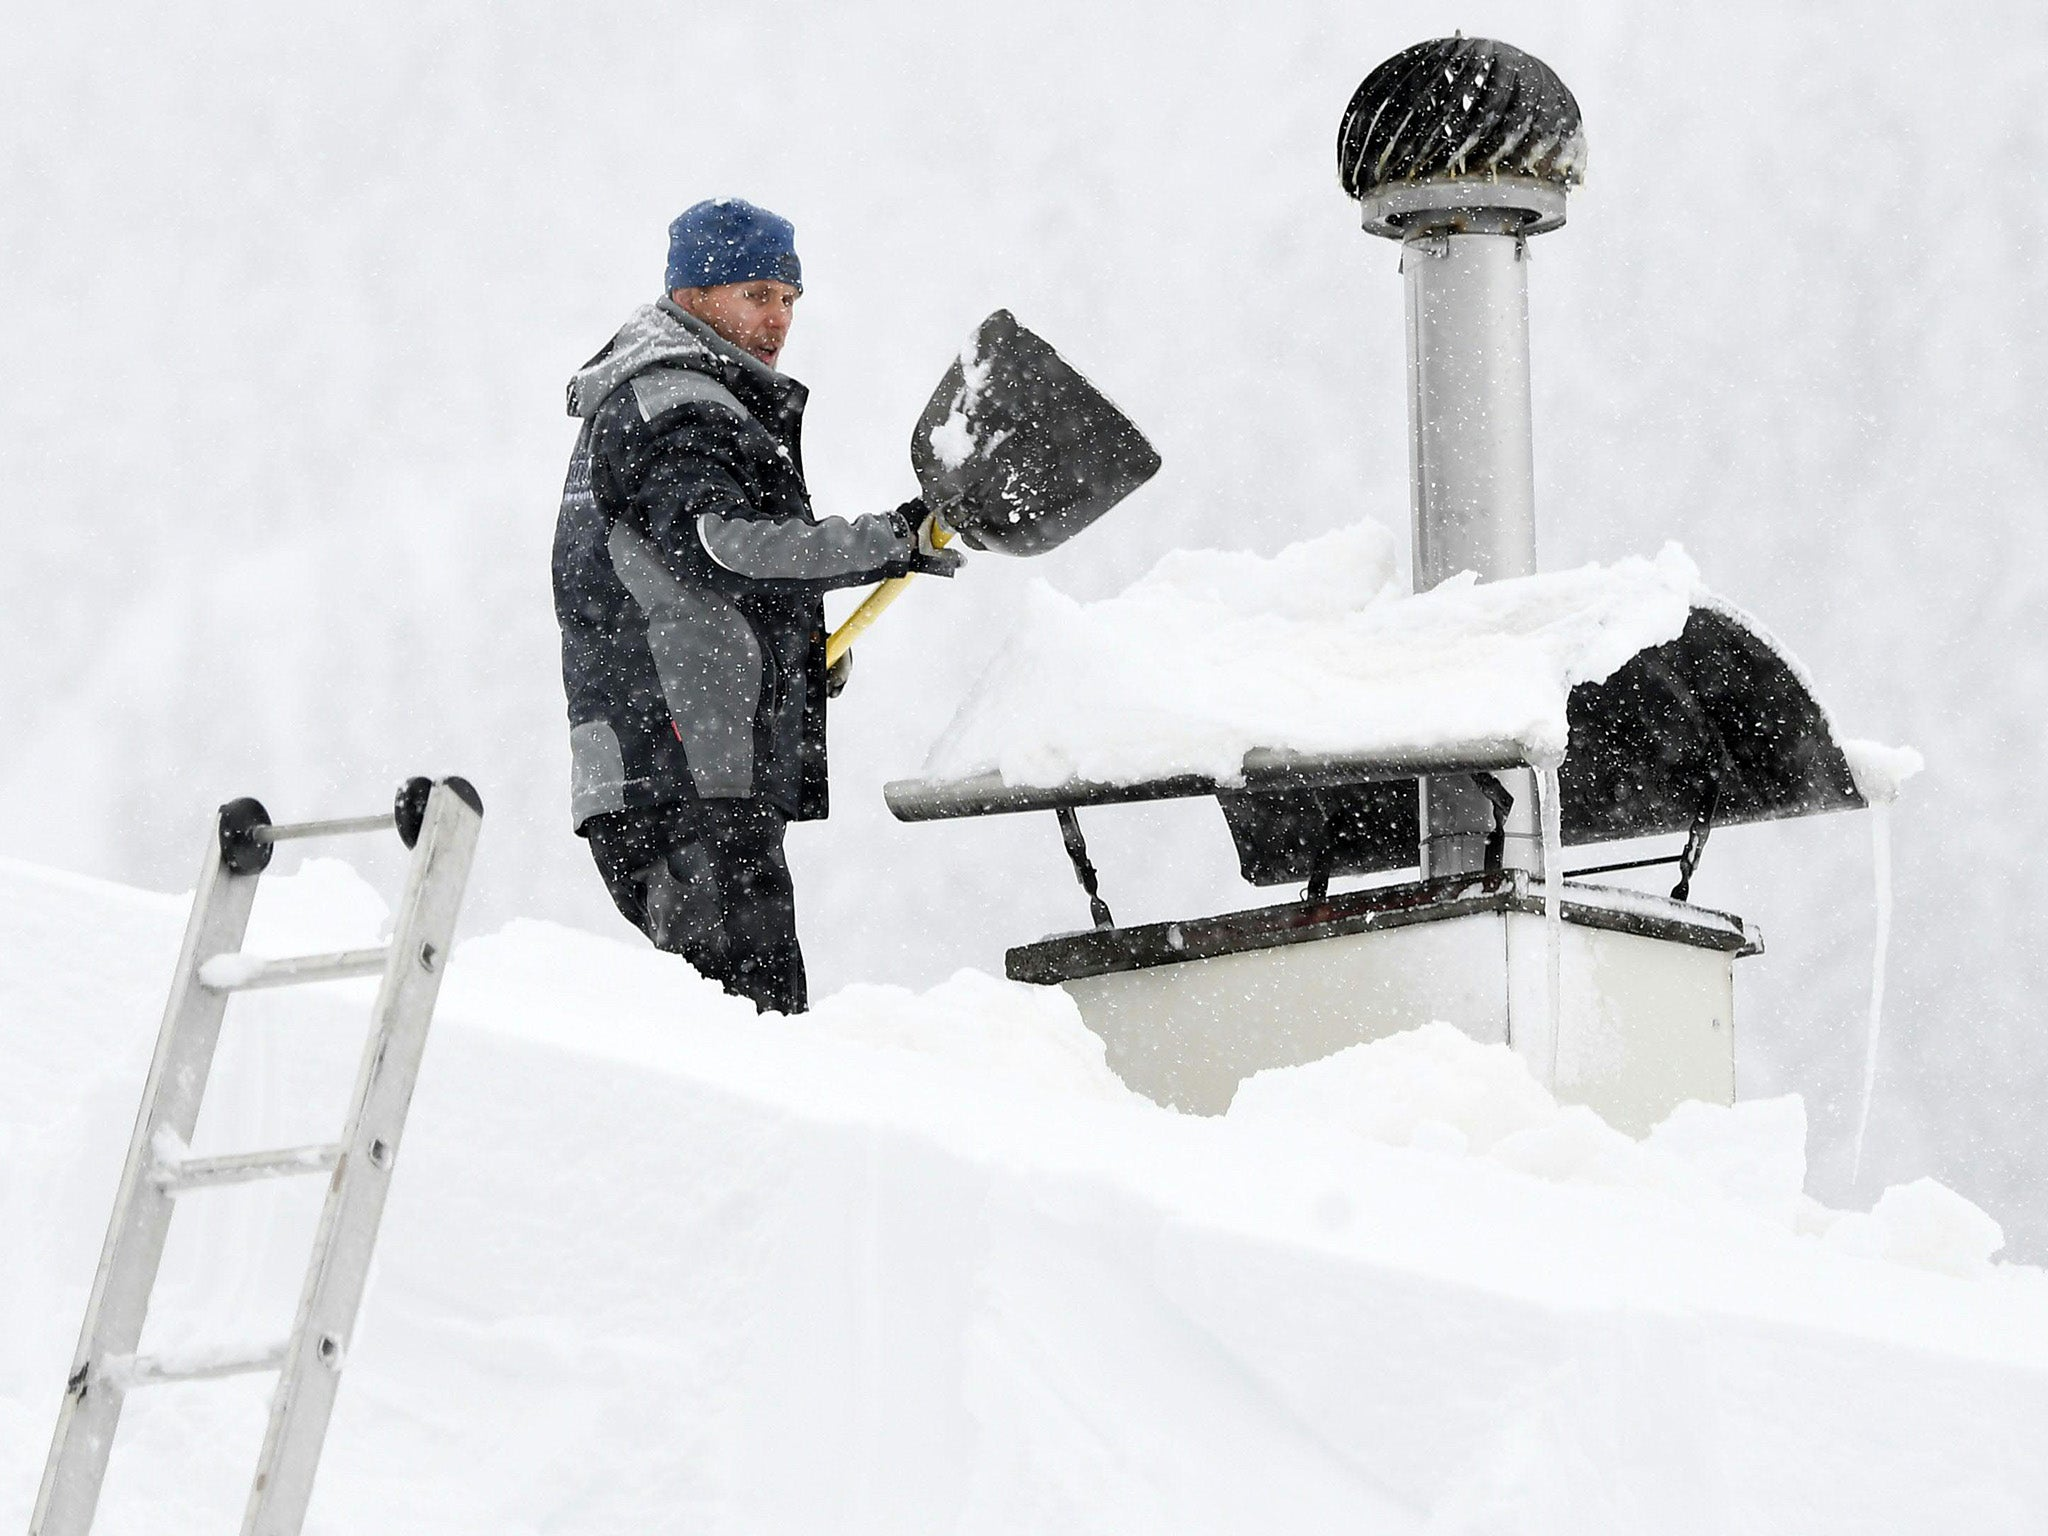 Lech News: Europe Weather: Two Rescuers Die In Avalanche Trigger